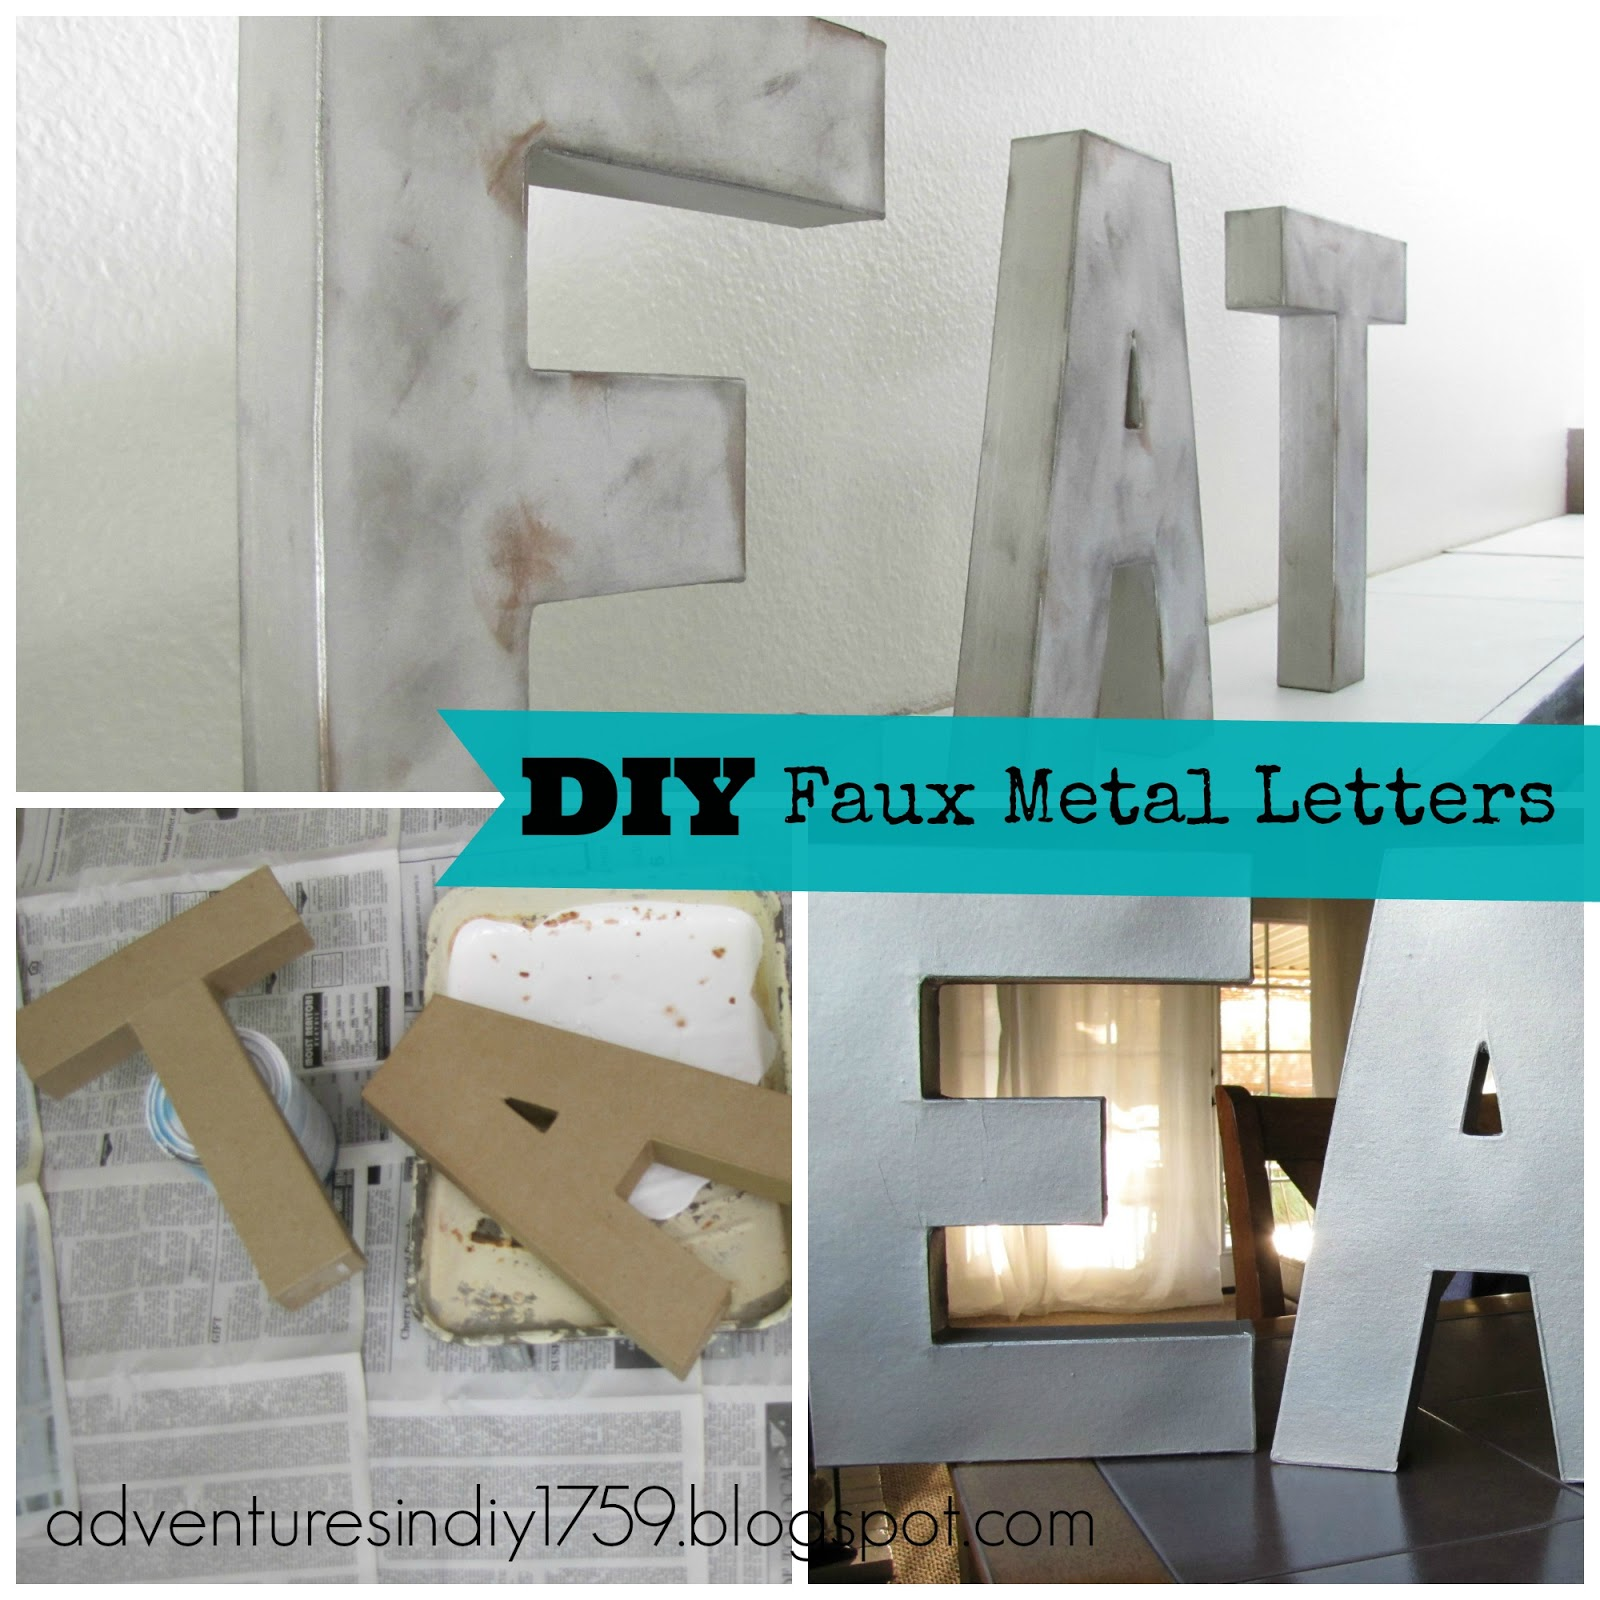 Adventures in DIY: Faux Metal Letters